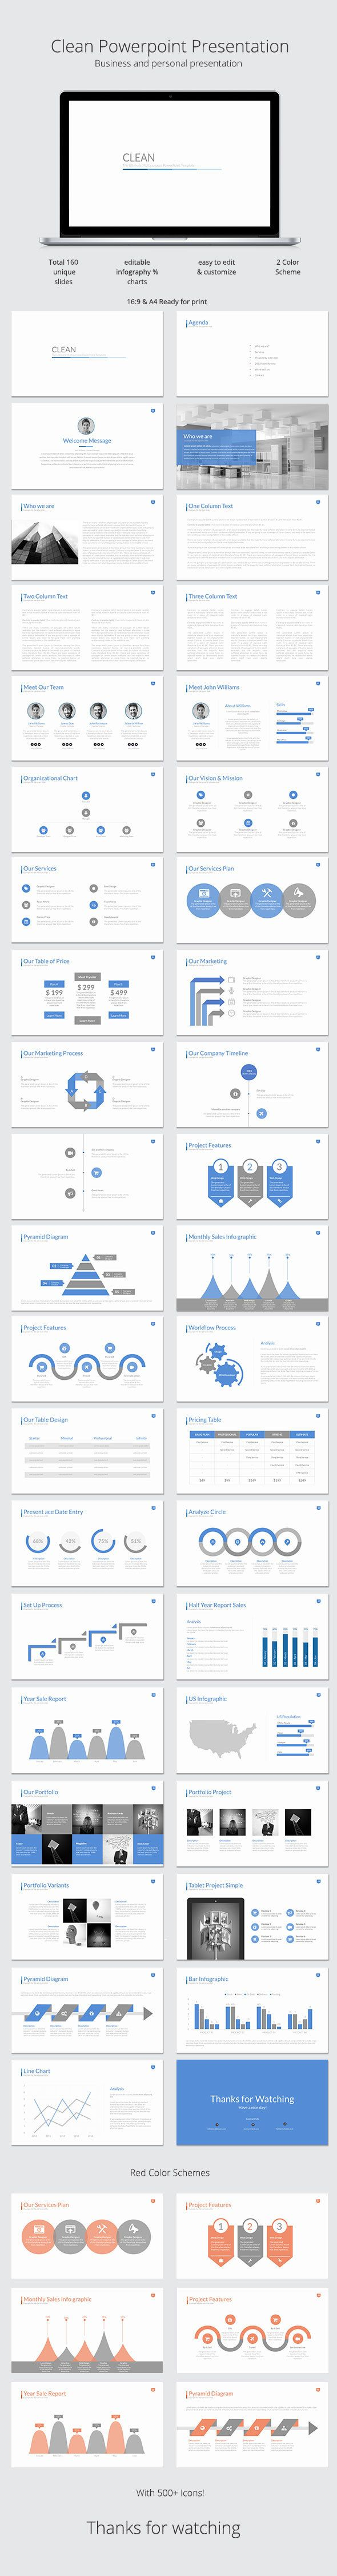 Coolmathgamesus  Splendid  Ideas About Powerpoint Presentations On Pinterest With Exciting Clean Powerpoint Template With Amazing Make A Powerpoint Online For Free Without Downloading Also Powerpoint  In Addition Powerpoint Backgrounds Blue And Powerpoint Add Background As Well As Nice Powerpoint Presentations Additionally Powerpoint Interview From Pinterestcom With Coolmathgamesus  Exciting  Ideas About Powerpoint Presentations On Pinterest With Amazing Clean Powerpoint Template And Splendid Make A Powerpoint Online For Free Without Downloading Also Powerpoint  In Addition Powerpoint Backgrounds Blue From Pinterestcom